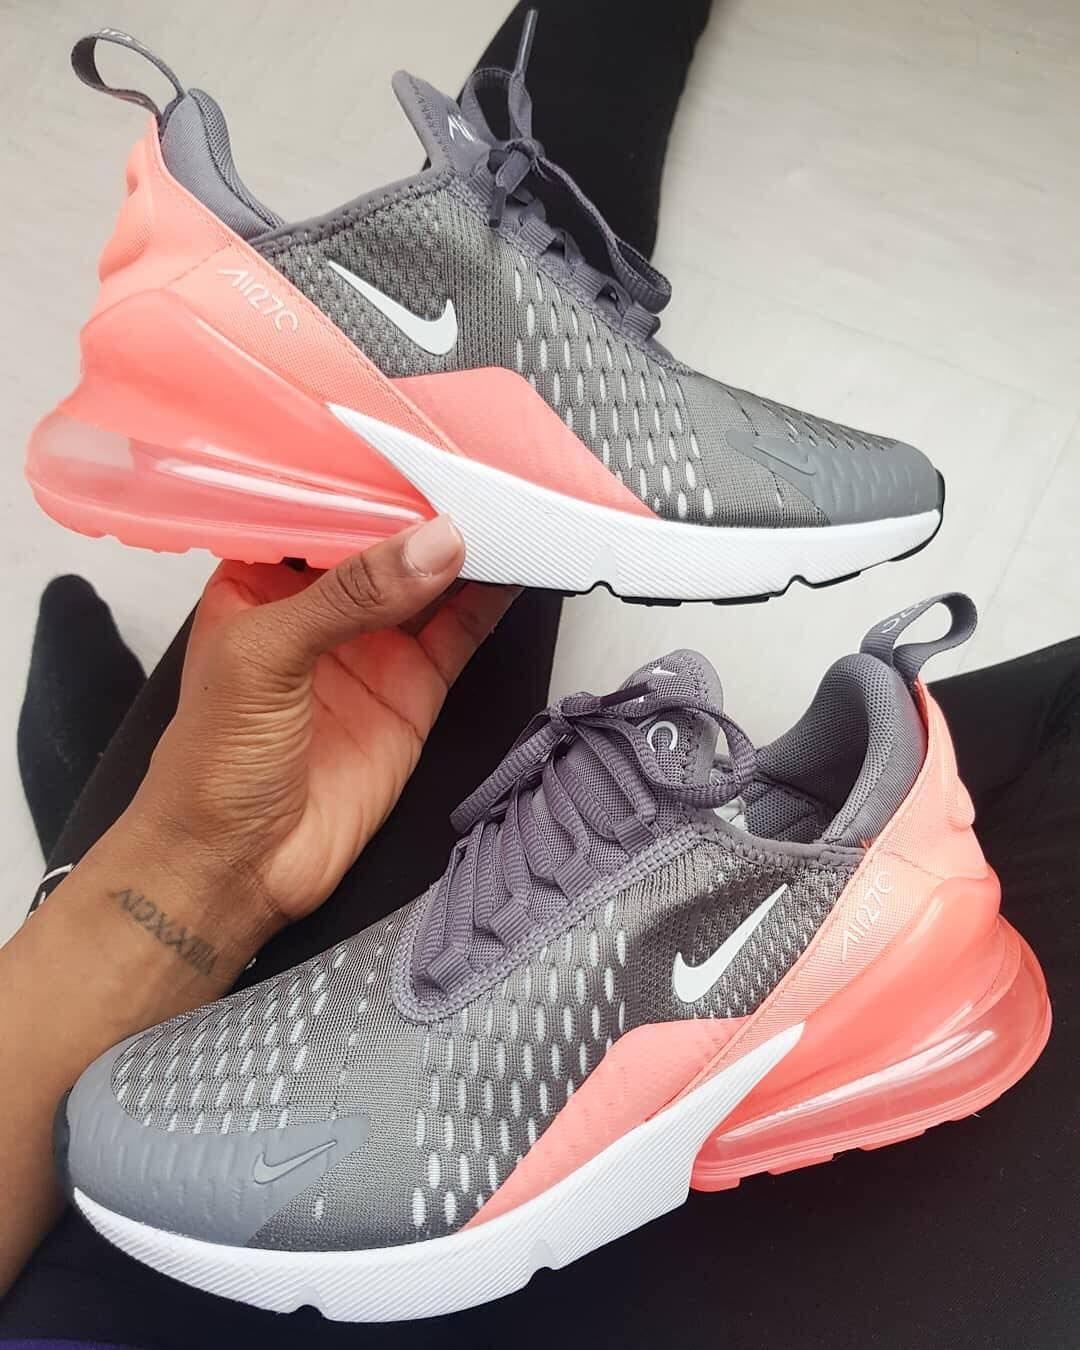 newest 1a7f1 8304d Air Max 270 Pink Grey Souliers Nike, Sneaker Outfits, Adidas Shoes, Tenis  Adidas